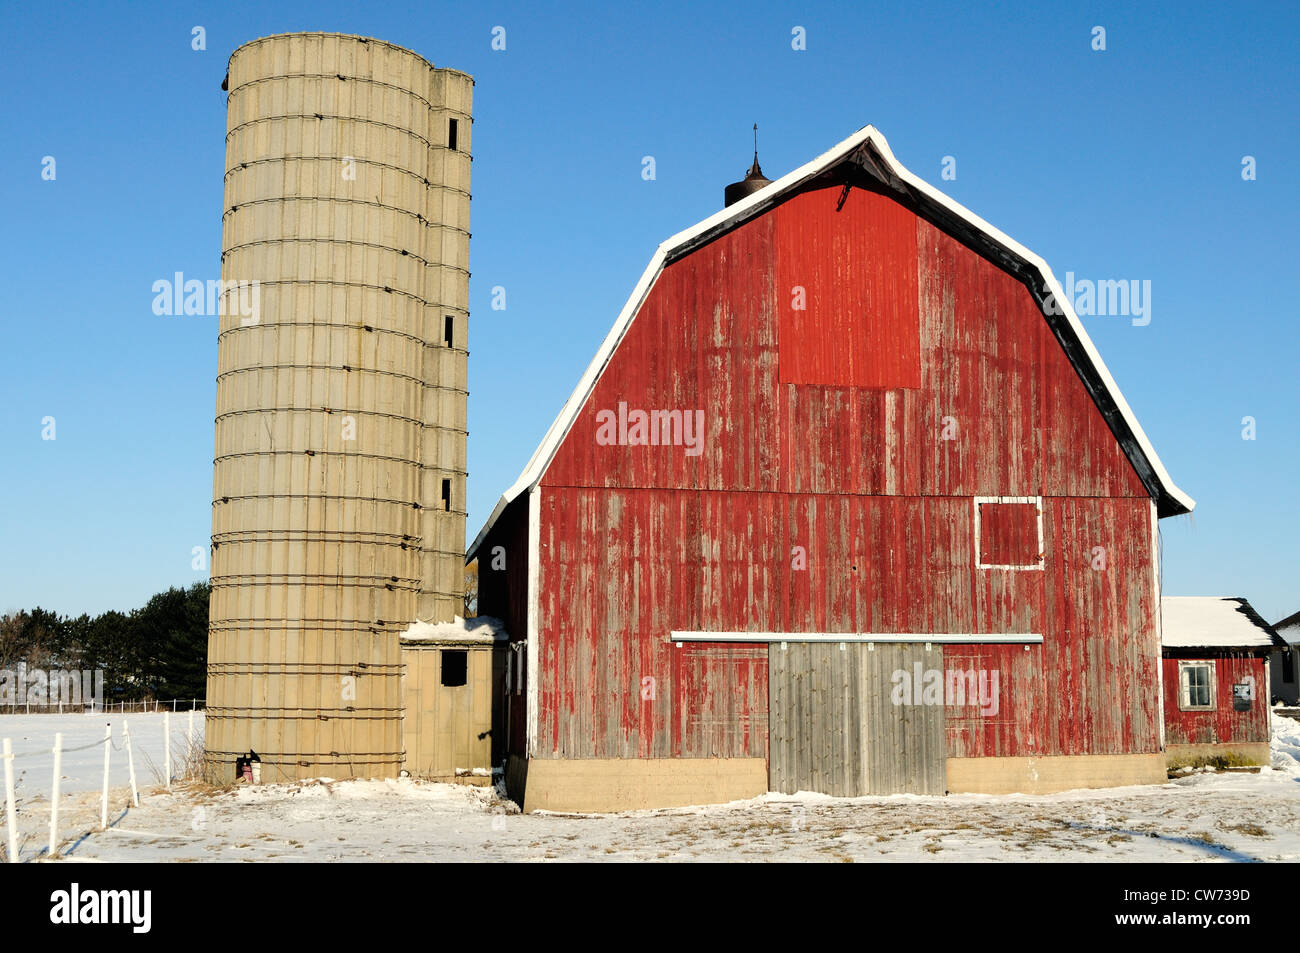 USA Illinois Winter scene Midwestern farm well-weathered red barn winter landscape - Stock Image